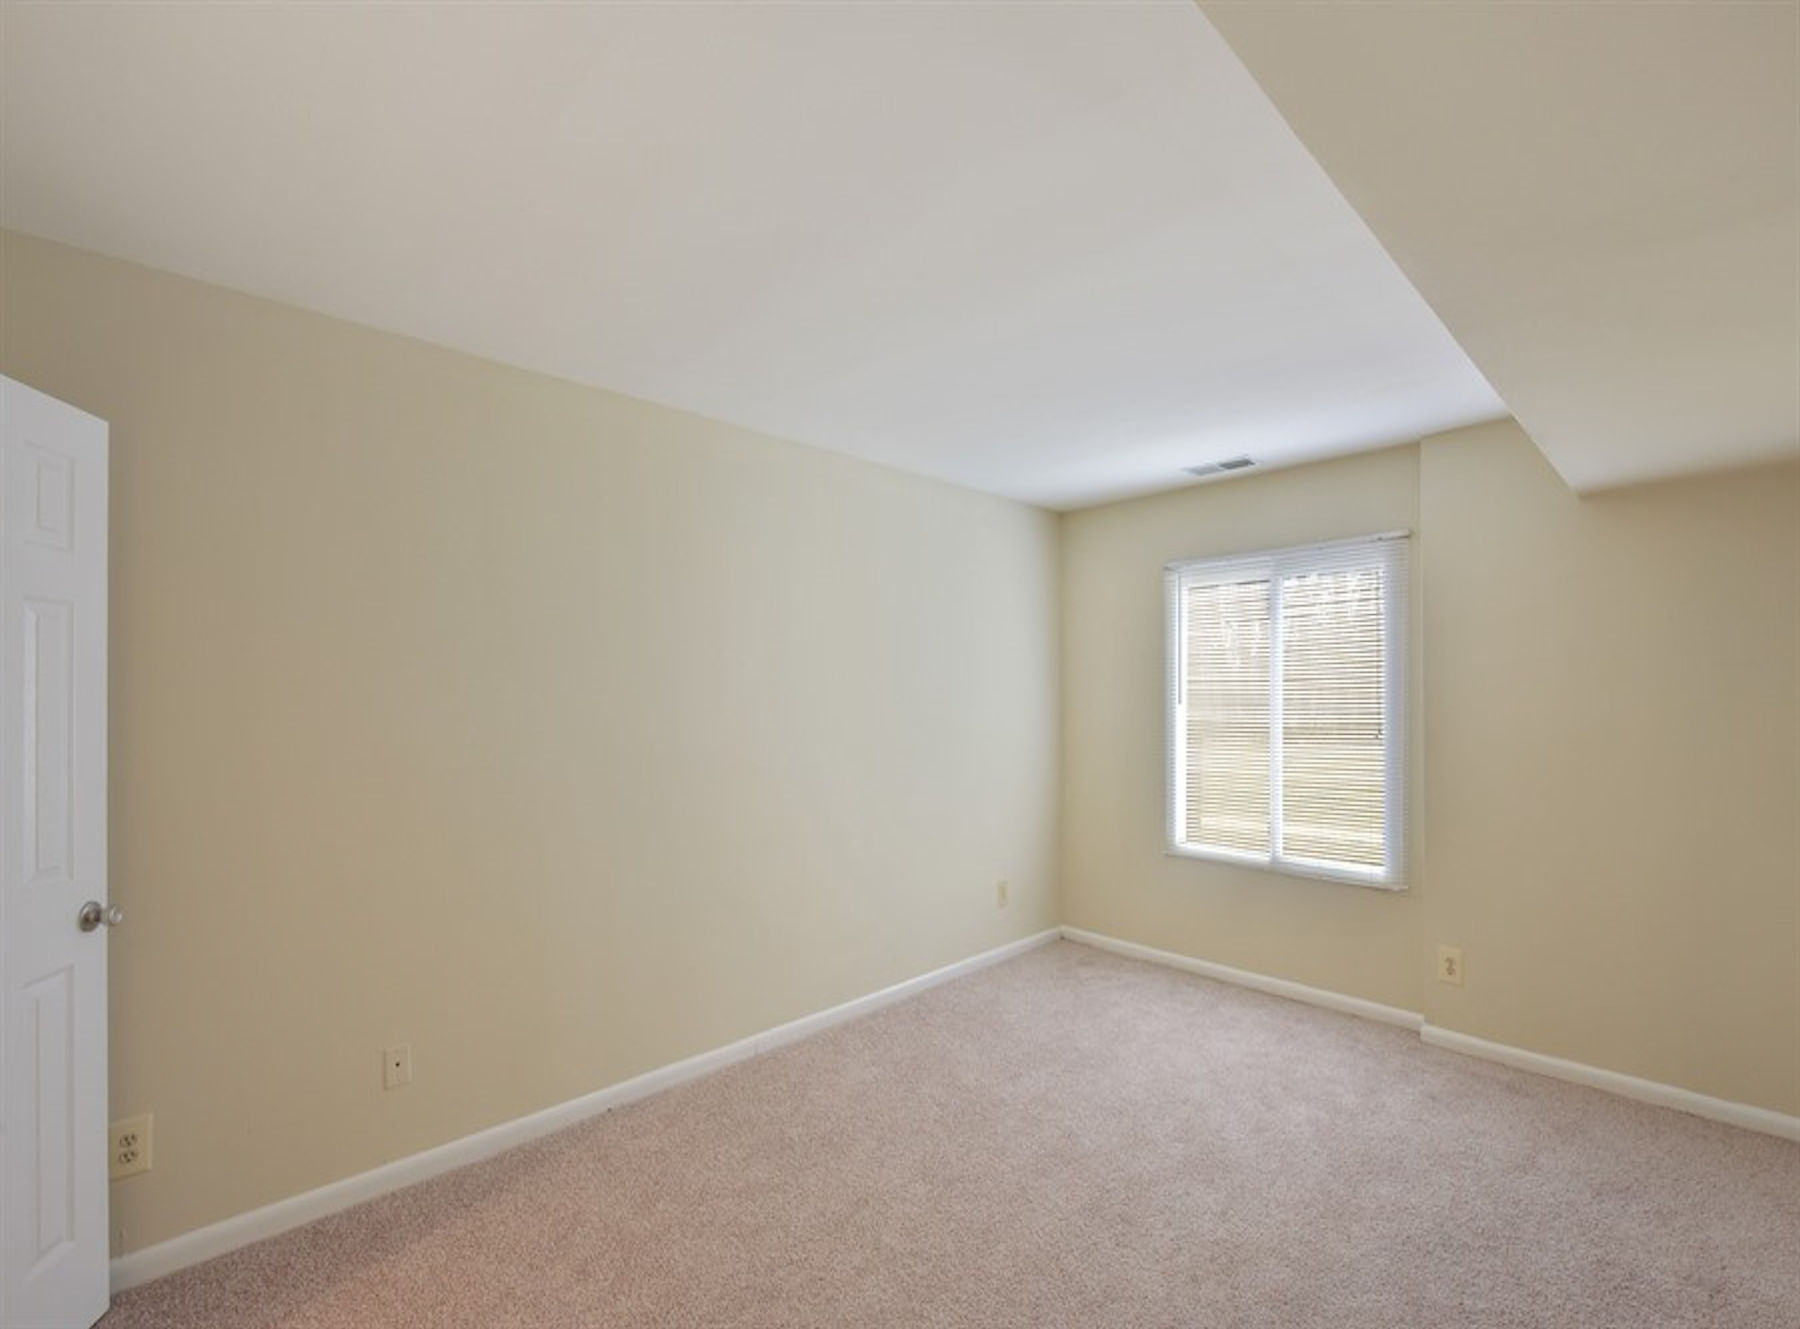 Model bedroom with large window, carpeting, and modern paint.